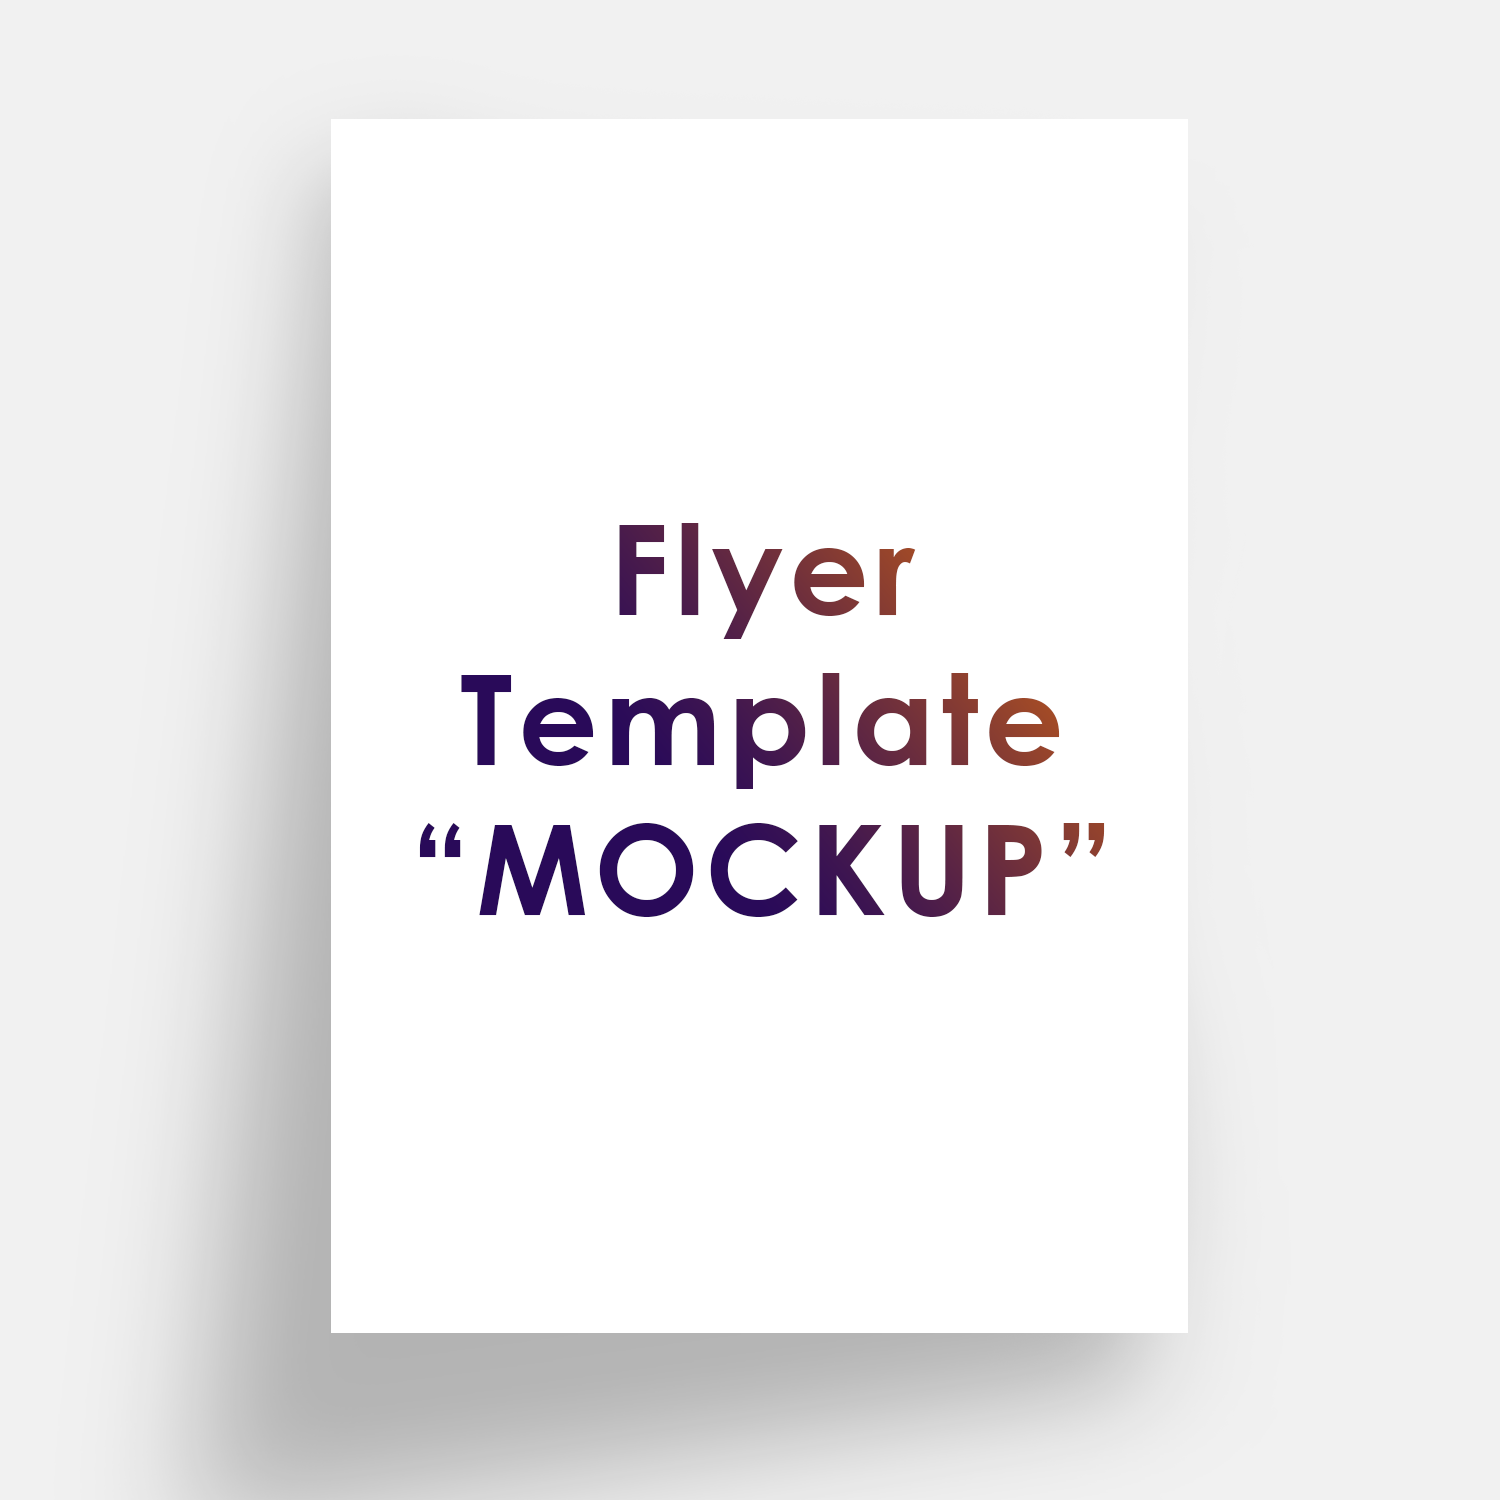 Flyer Template Mockup Free